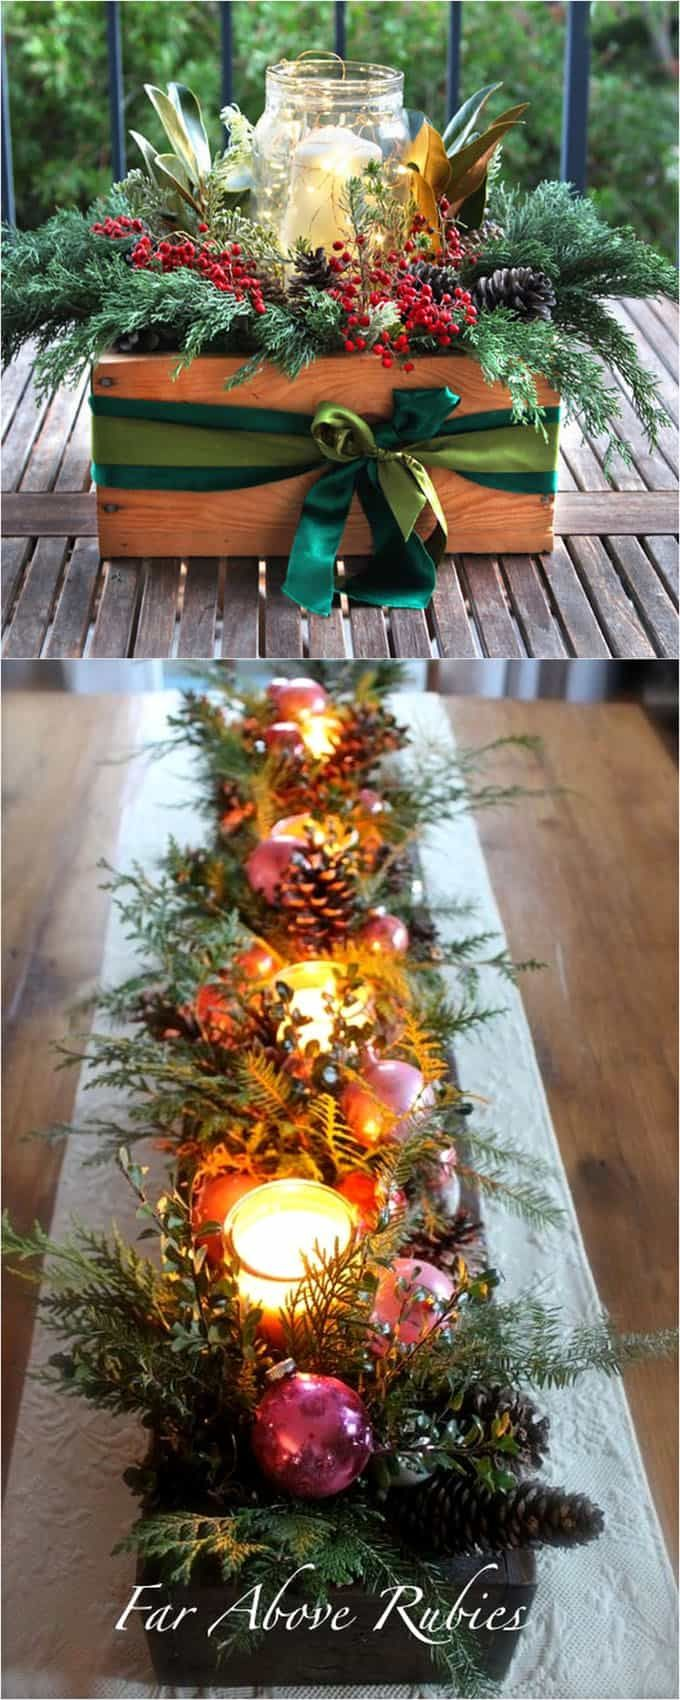 27 gorgeous easy diy thanksgiving and christmas table decorations centerpieces most can be made in less than 20 minutes from things you already have - Christmas Table Decorations Centerpieces